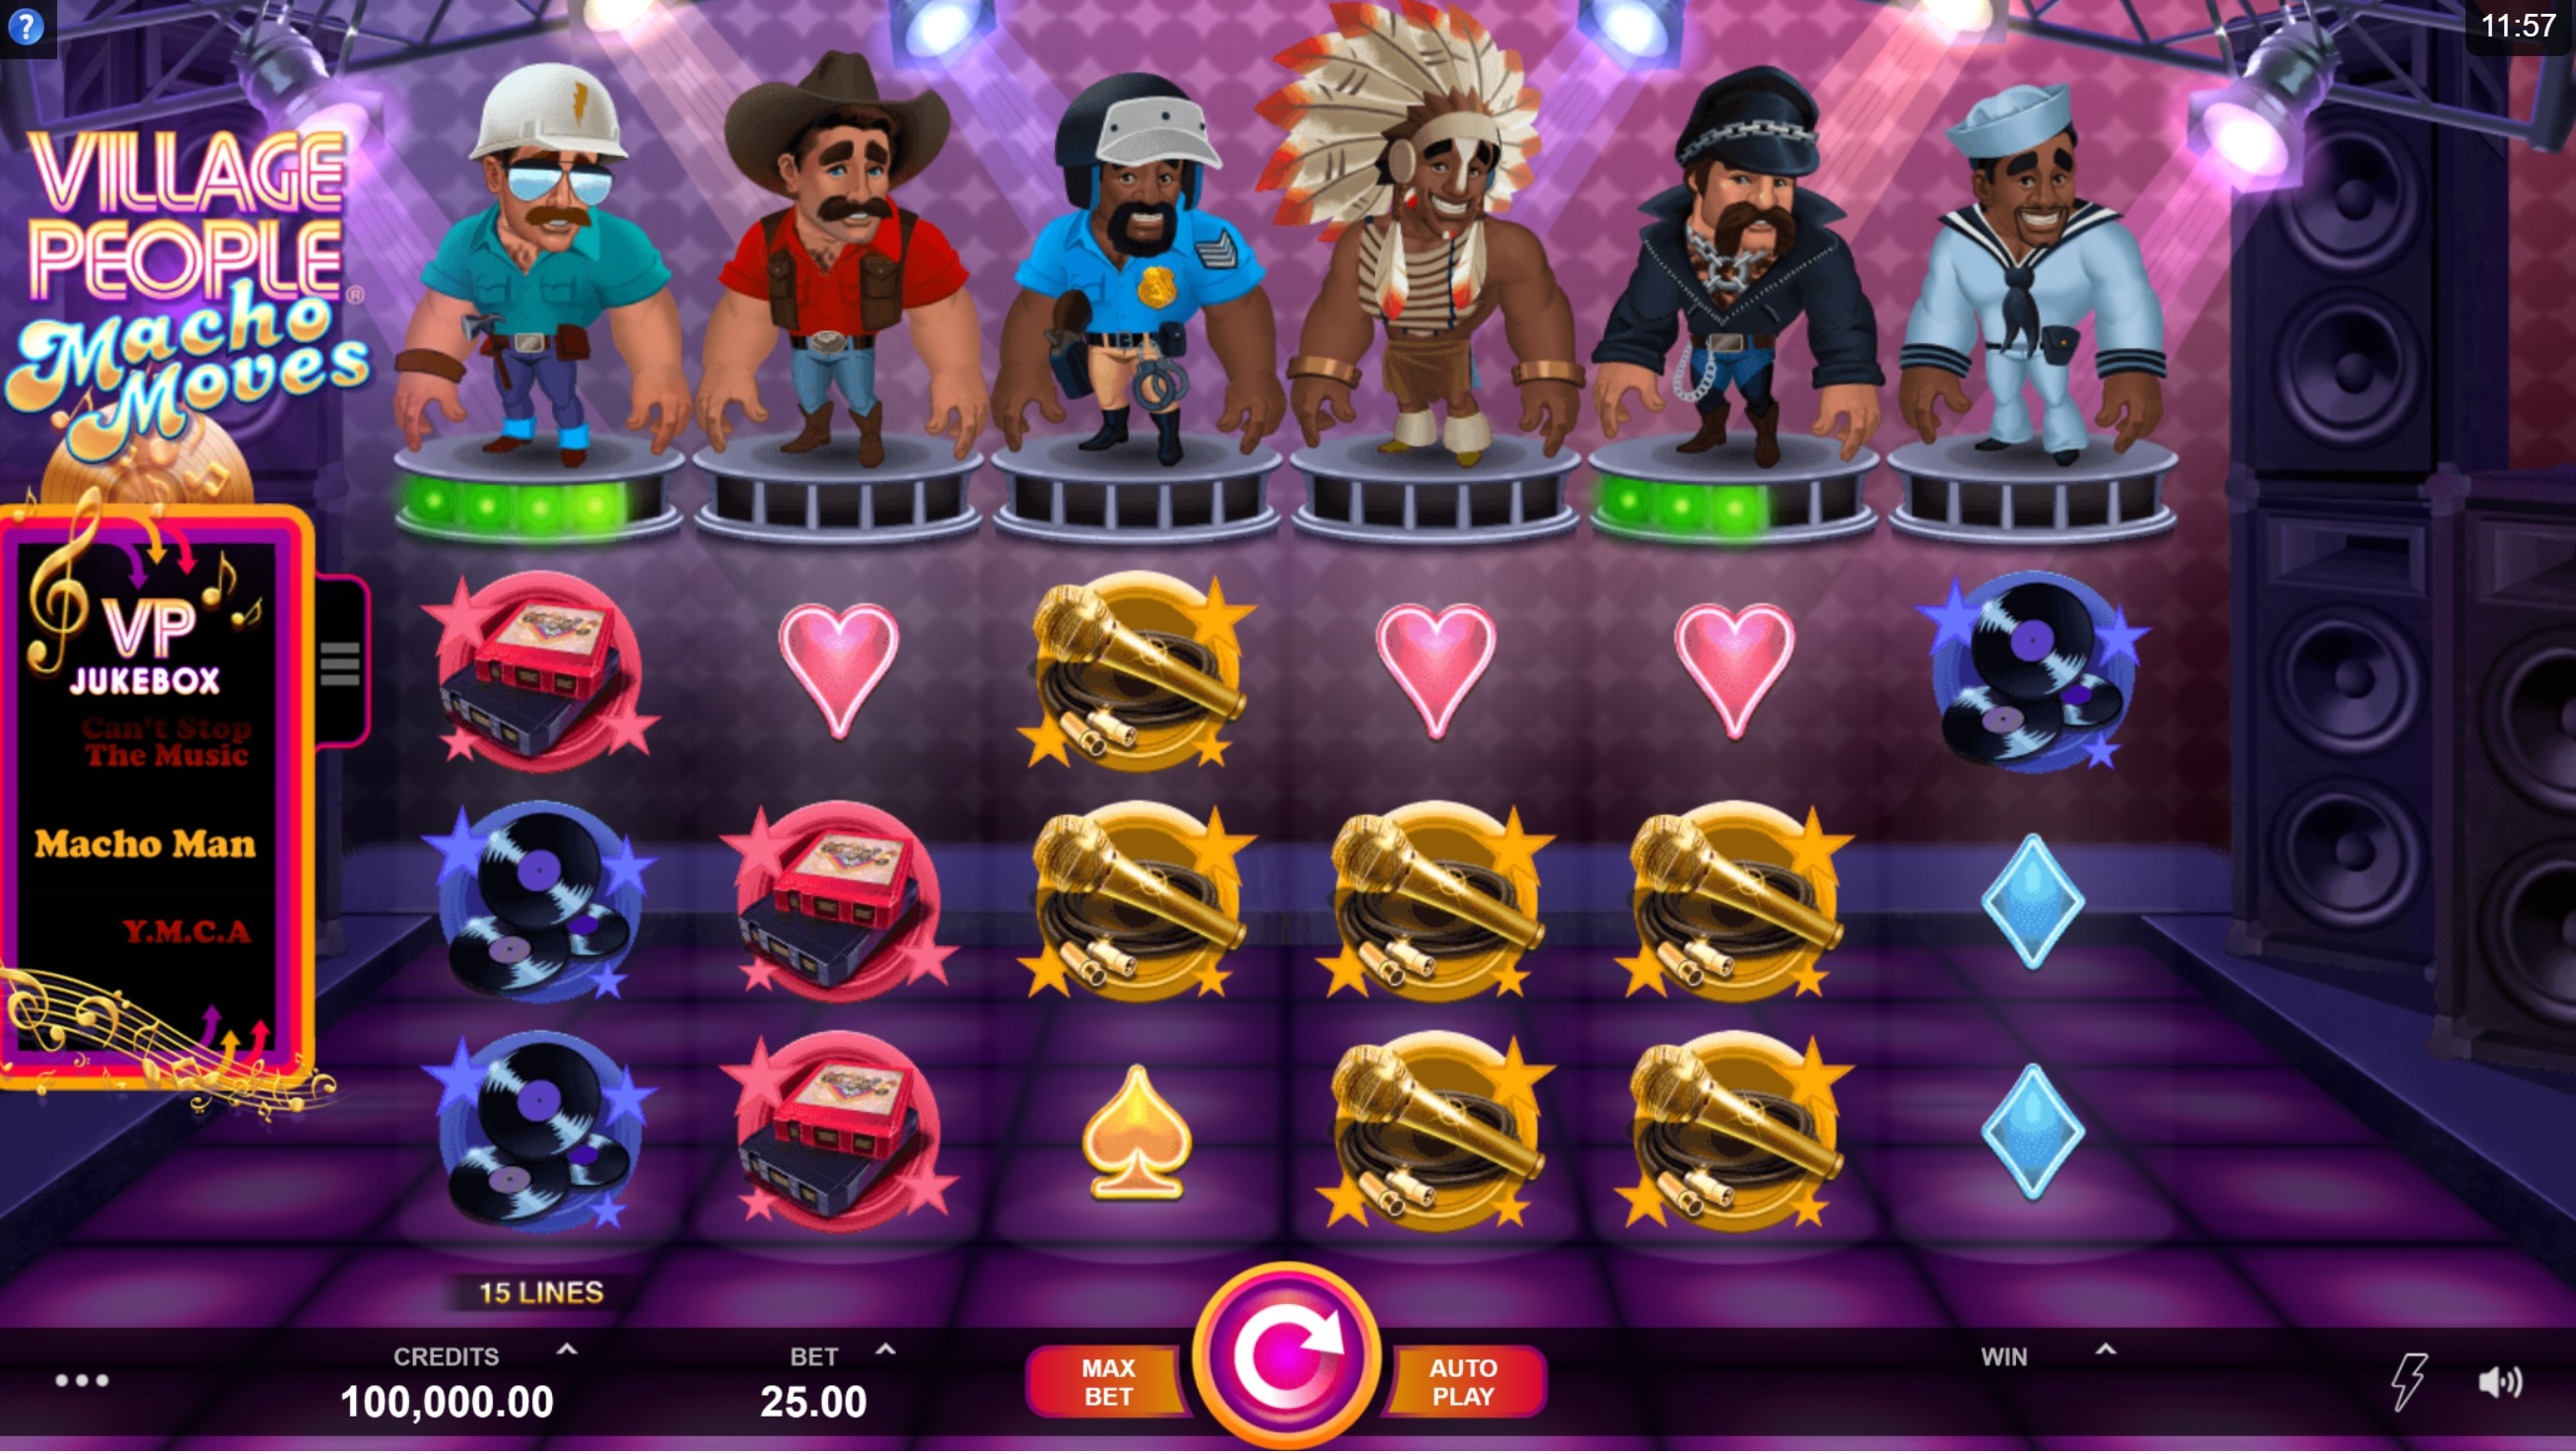 Village People: Macho Moves at sapphire rooms